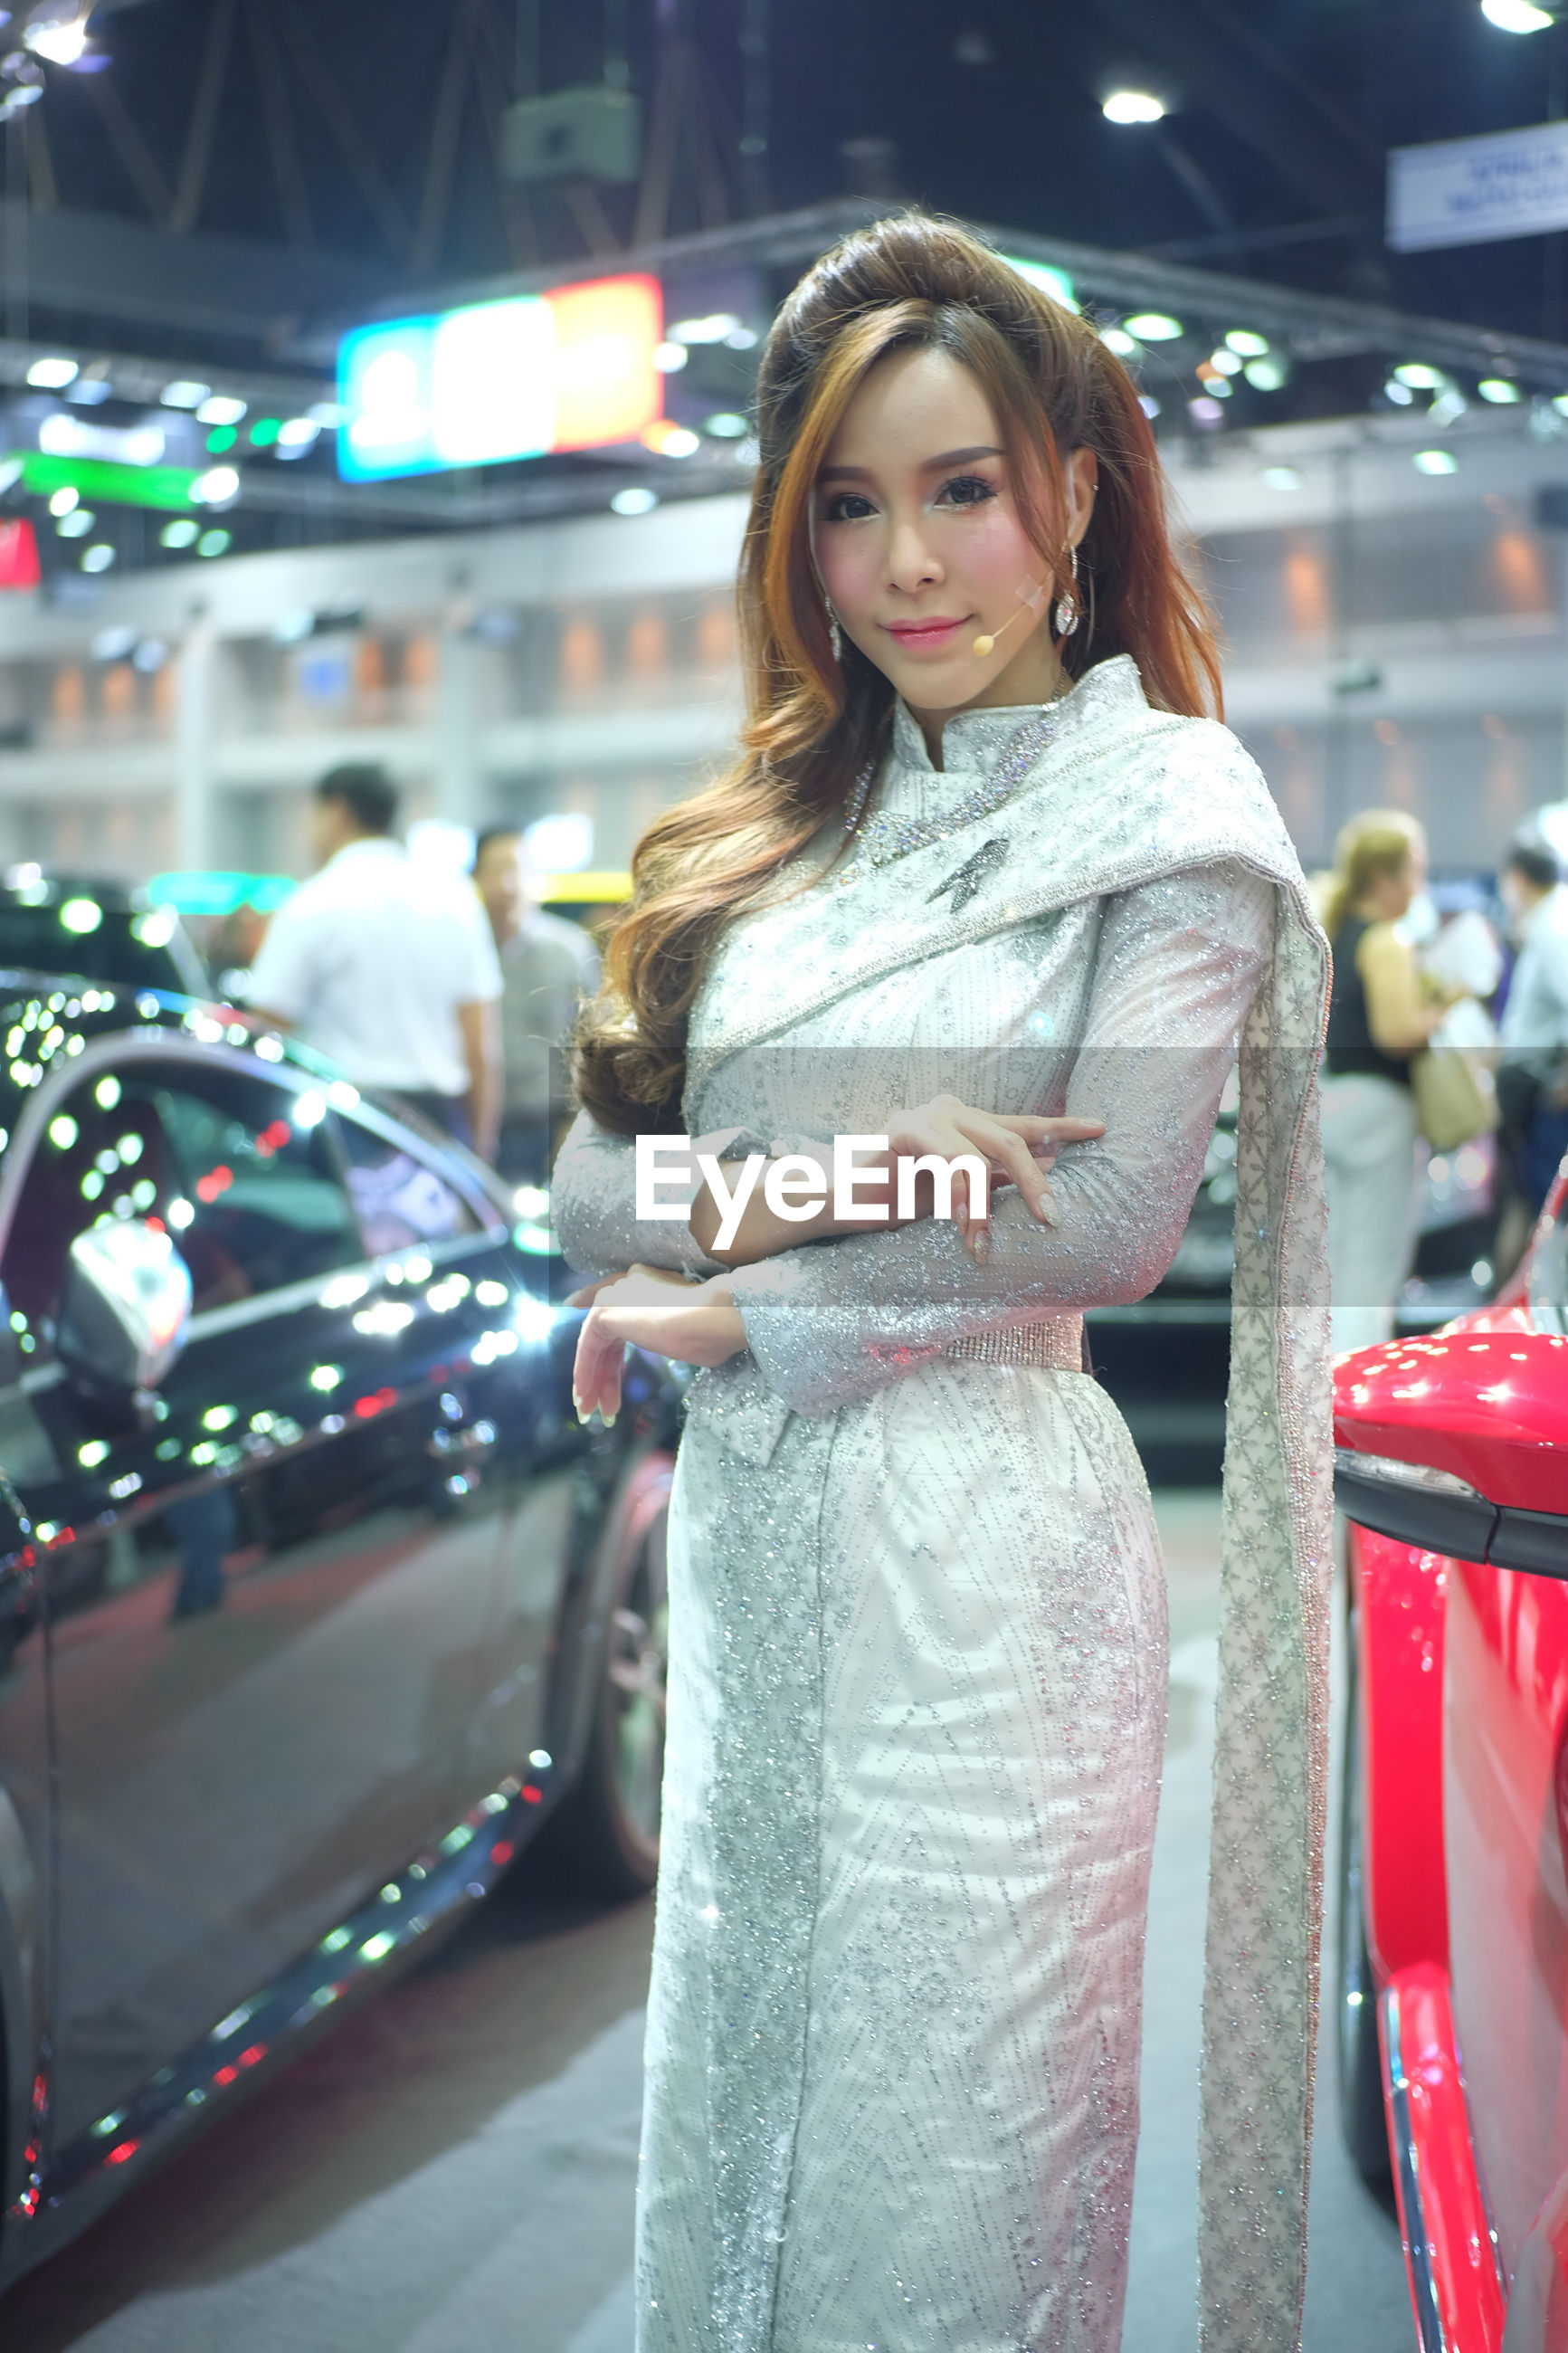 YOUNG WOMAN IN SHOPPING MALL IN CITY